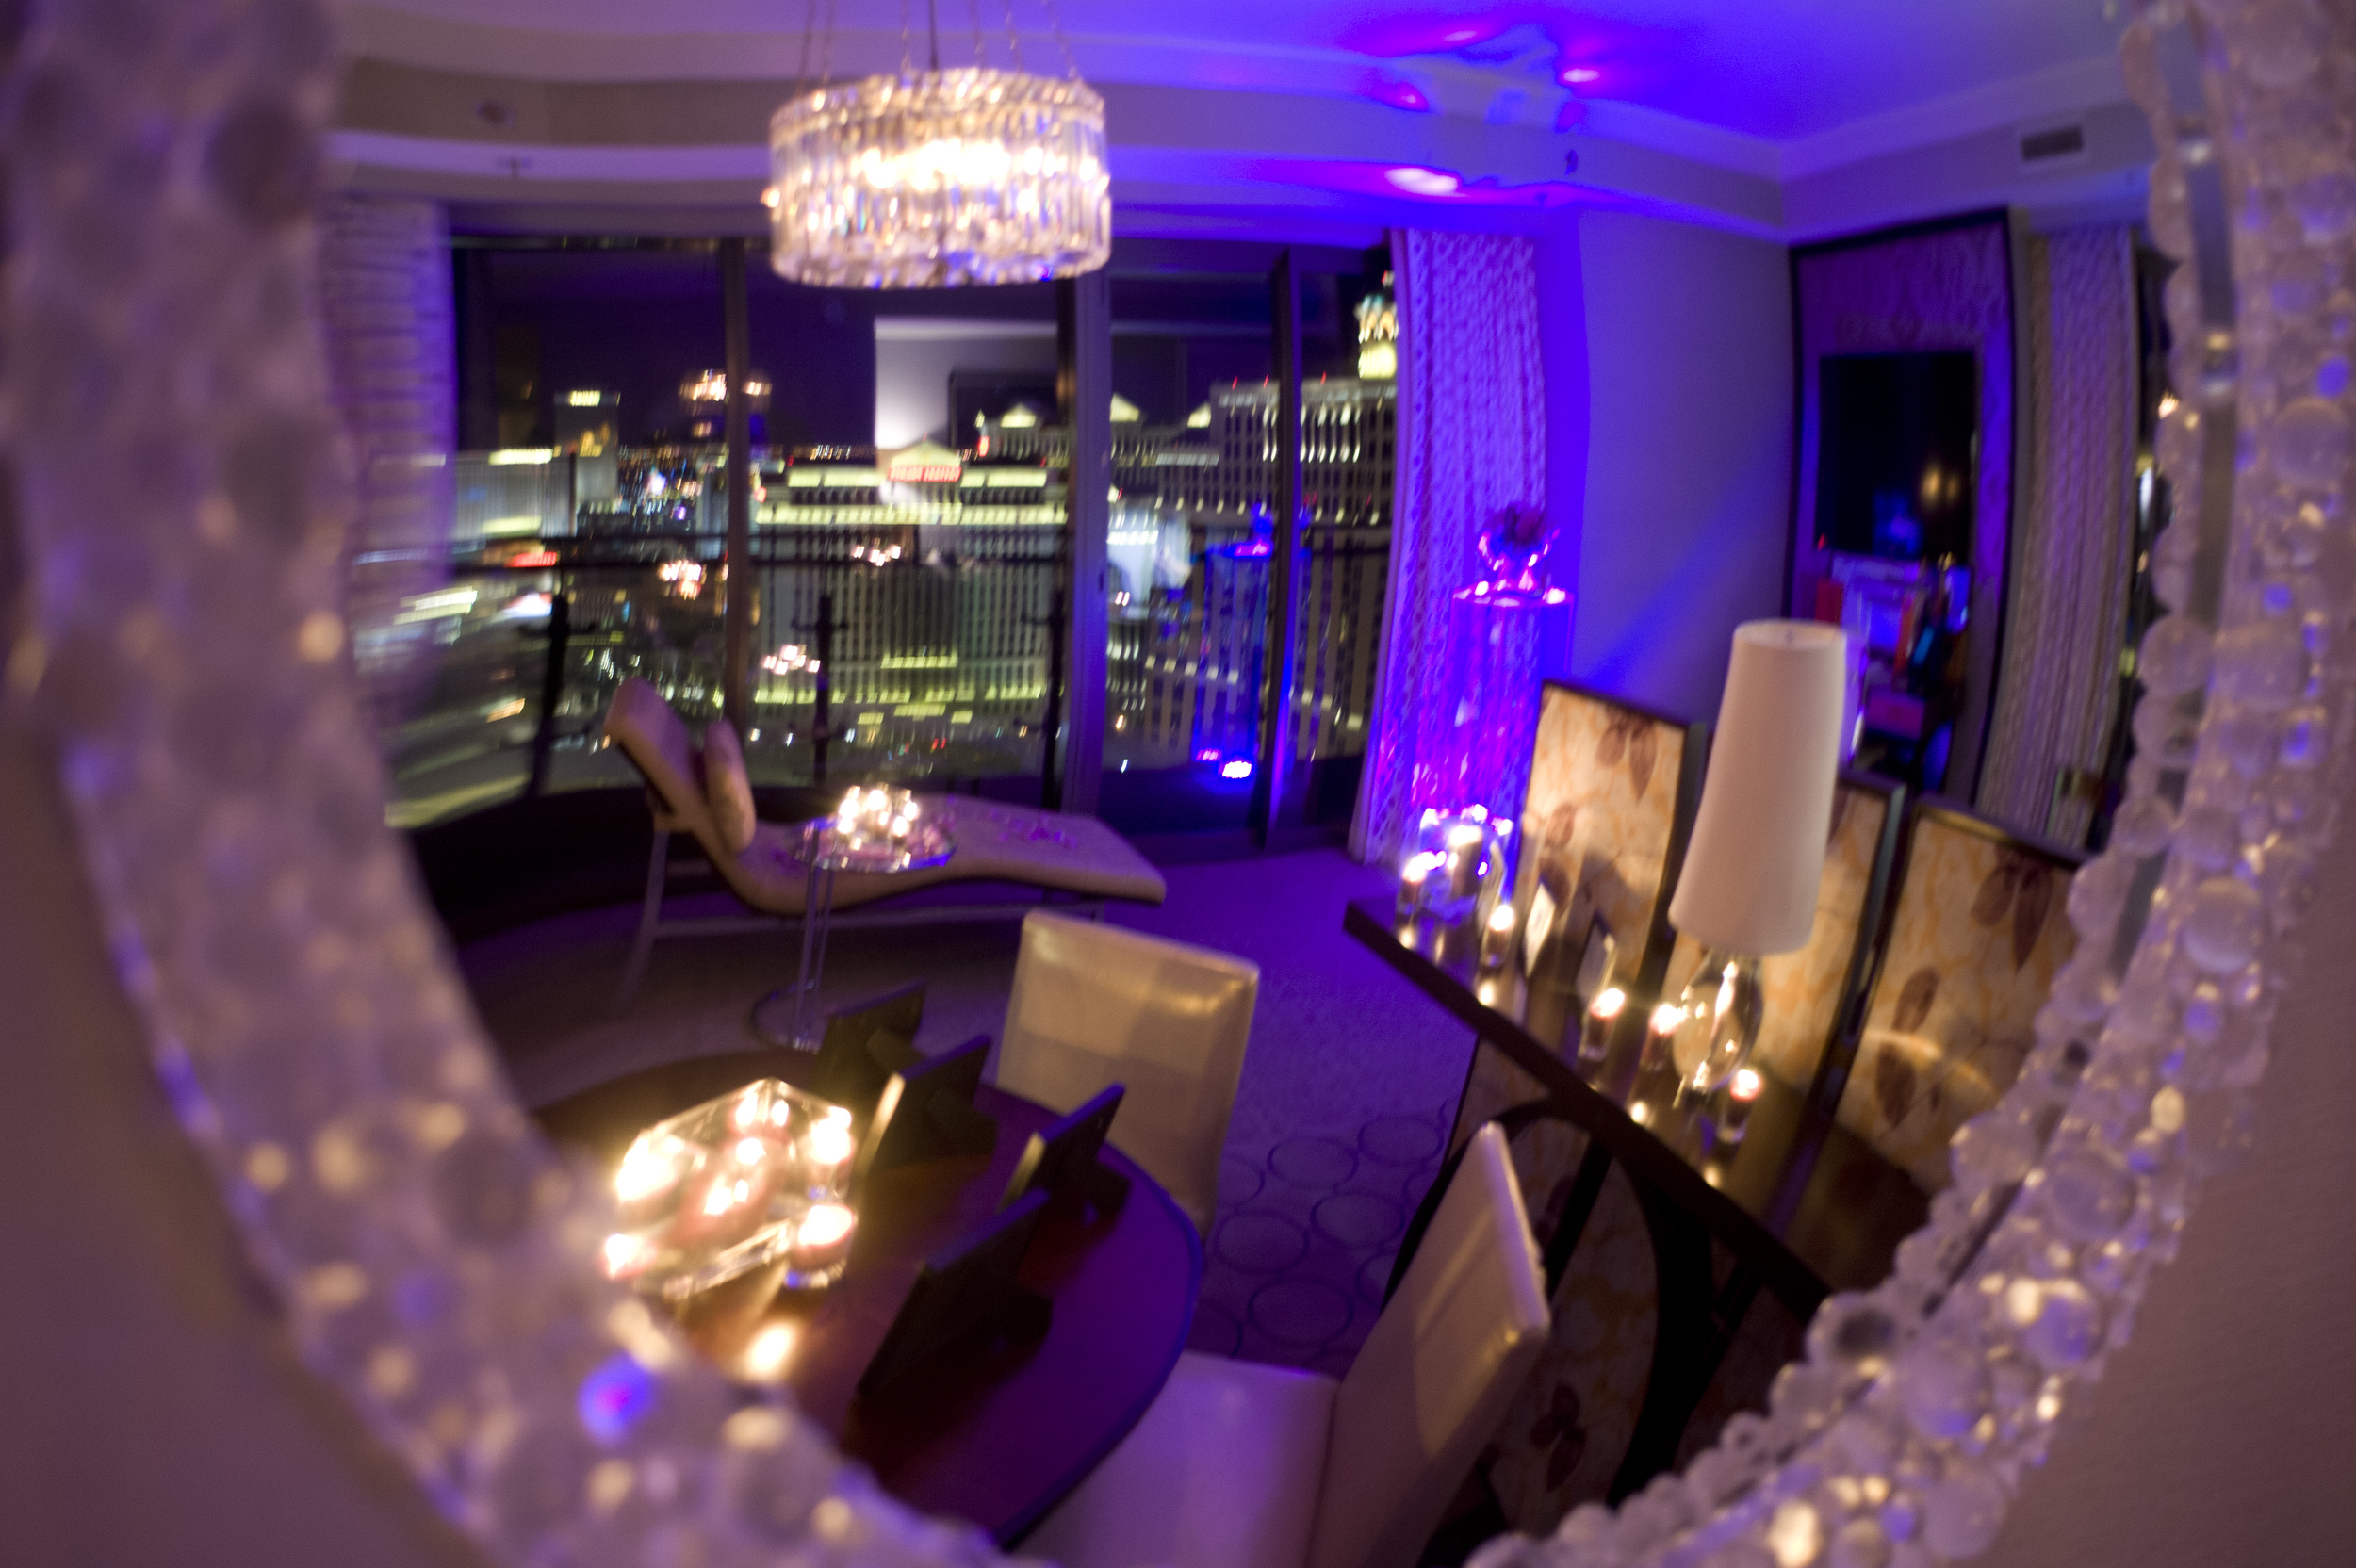 An overview of the room and seen through the gorgeous mirror. The scene was set through the use of lavender rose petals, purple uplighting and customized electrical votives.